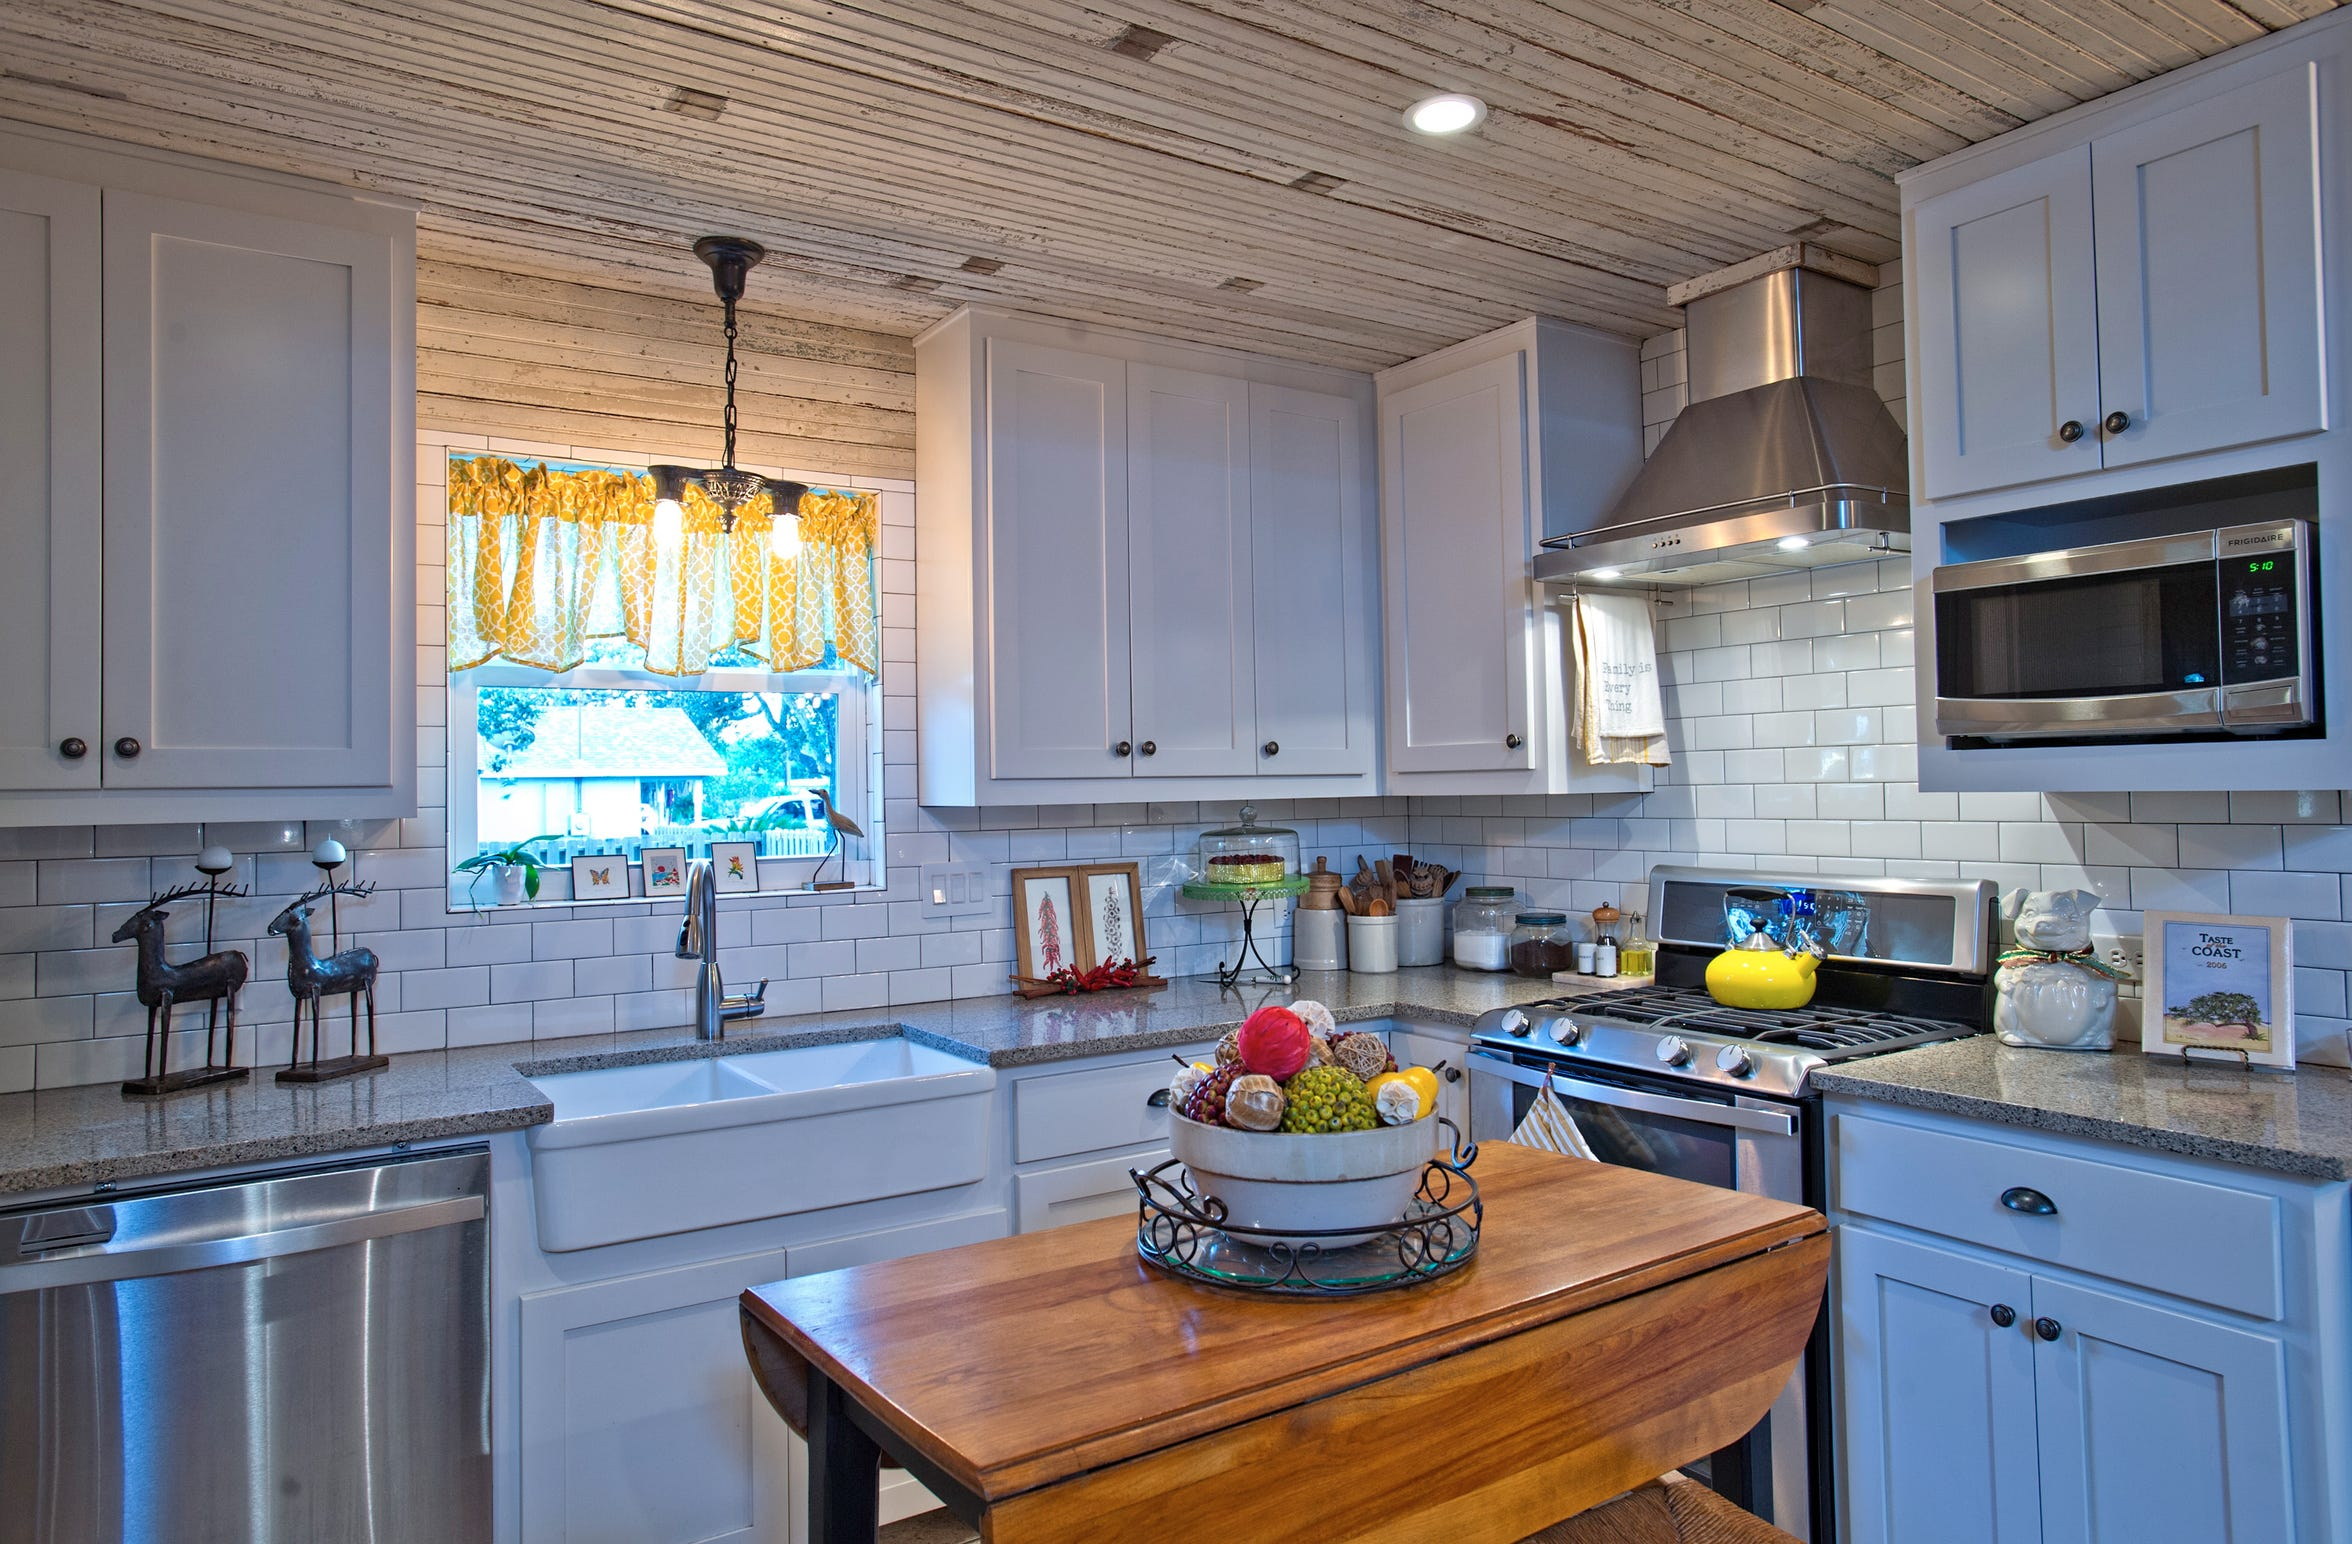 The updated kitchen still has a vintage feel with a white subway tiled backsplash, farm sink and granite counters with a vintage wood plank ceiling